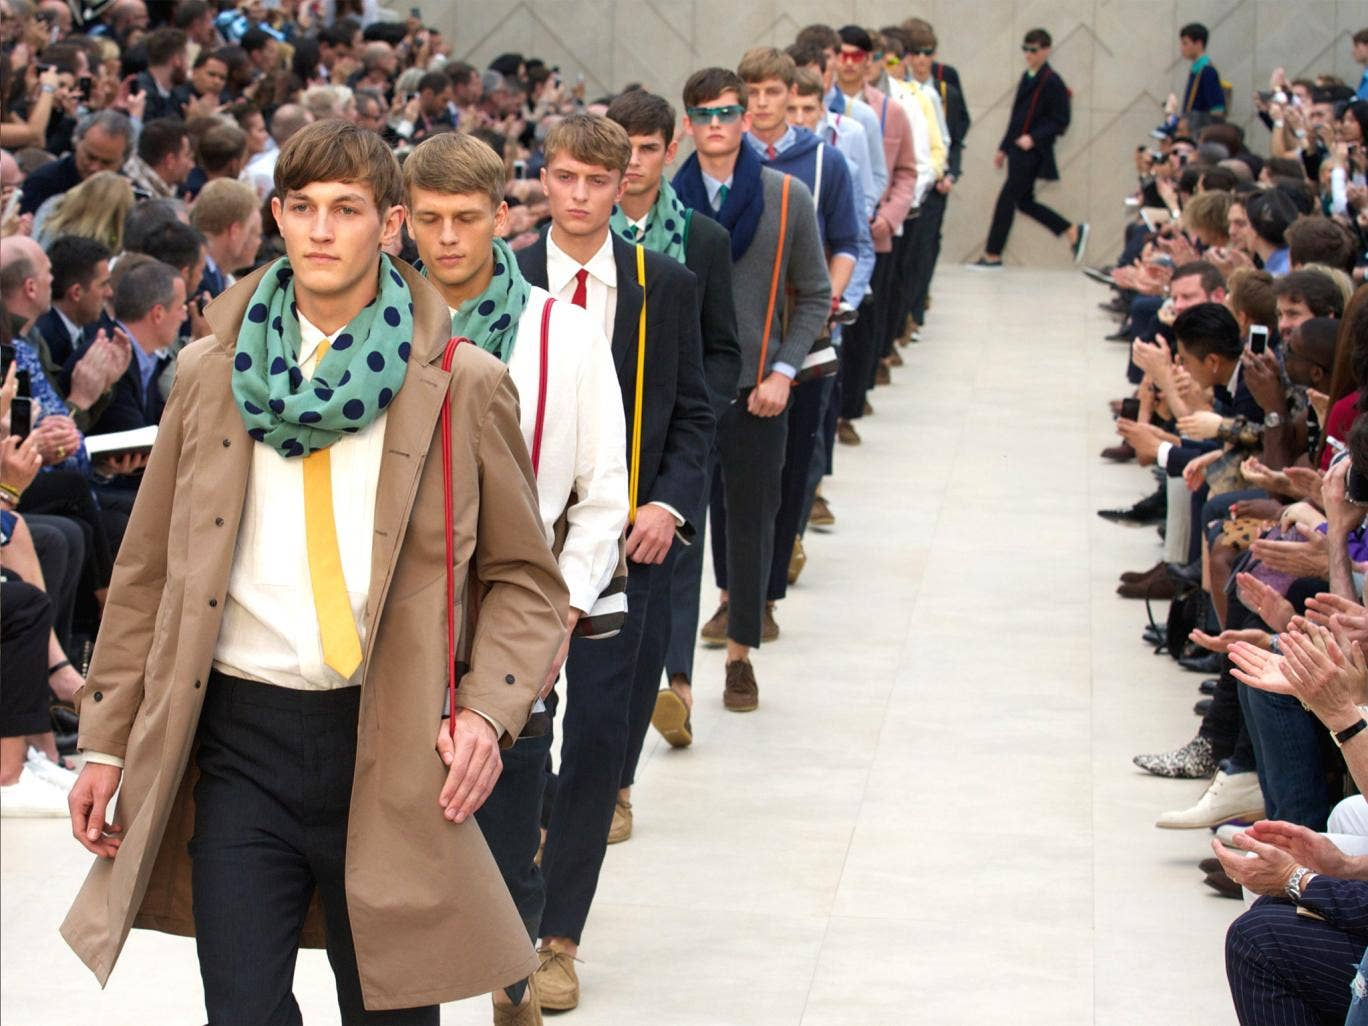 Models present creations by Burberry Prorsum during the Spring/Summer 2014 London Collections: Men fashion event in Kensington